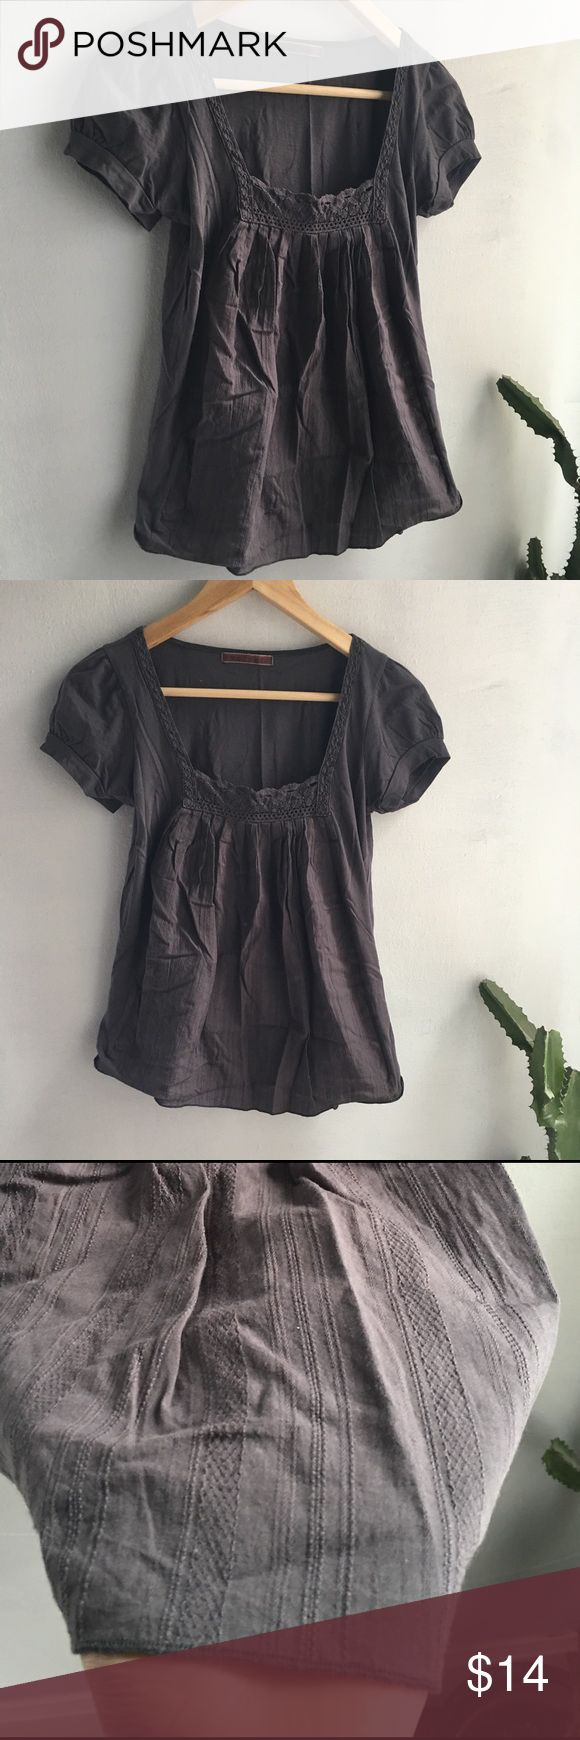 Grey Velvet t. Shirt by: Spencer & Graham Cute peasant cotton t.shirt with a square decorative neckline that is loose it the torso. Size small. No stains or damage. In good used condition. Velvet Tops Tees - Short Sleeve